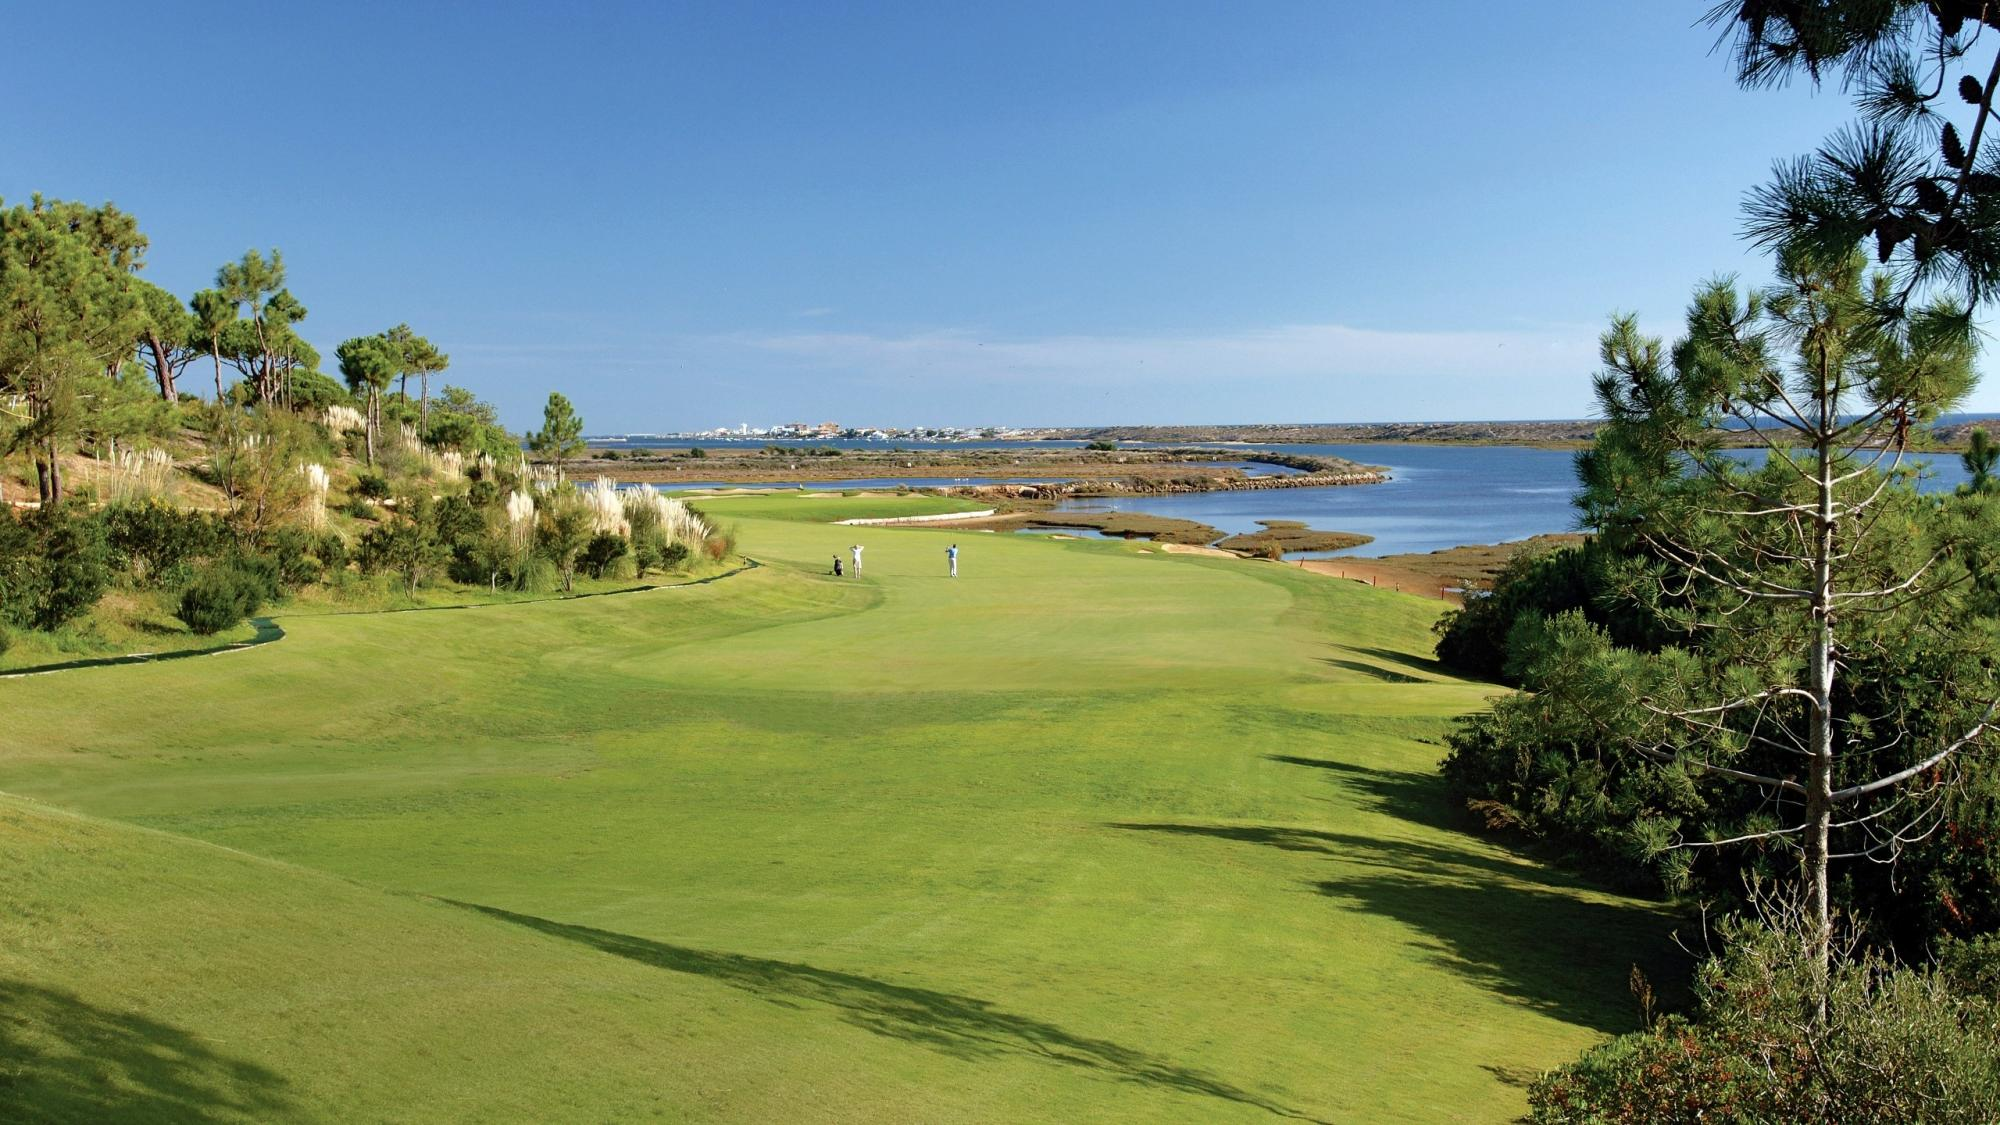 The Bonalba Golf Course's beautiful golf course situated in marvelous Costa Blanca.